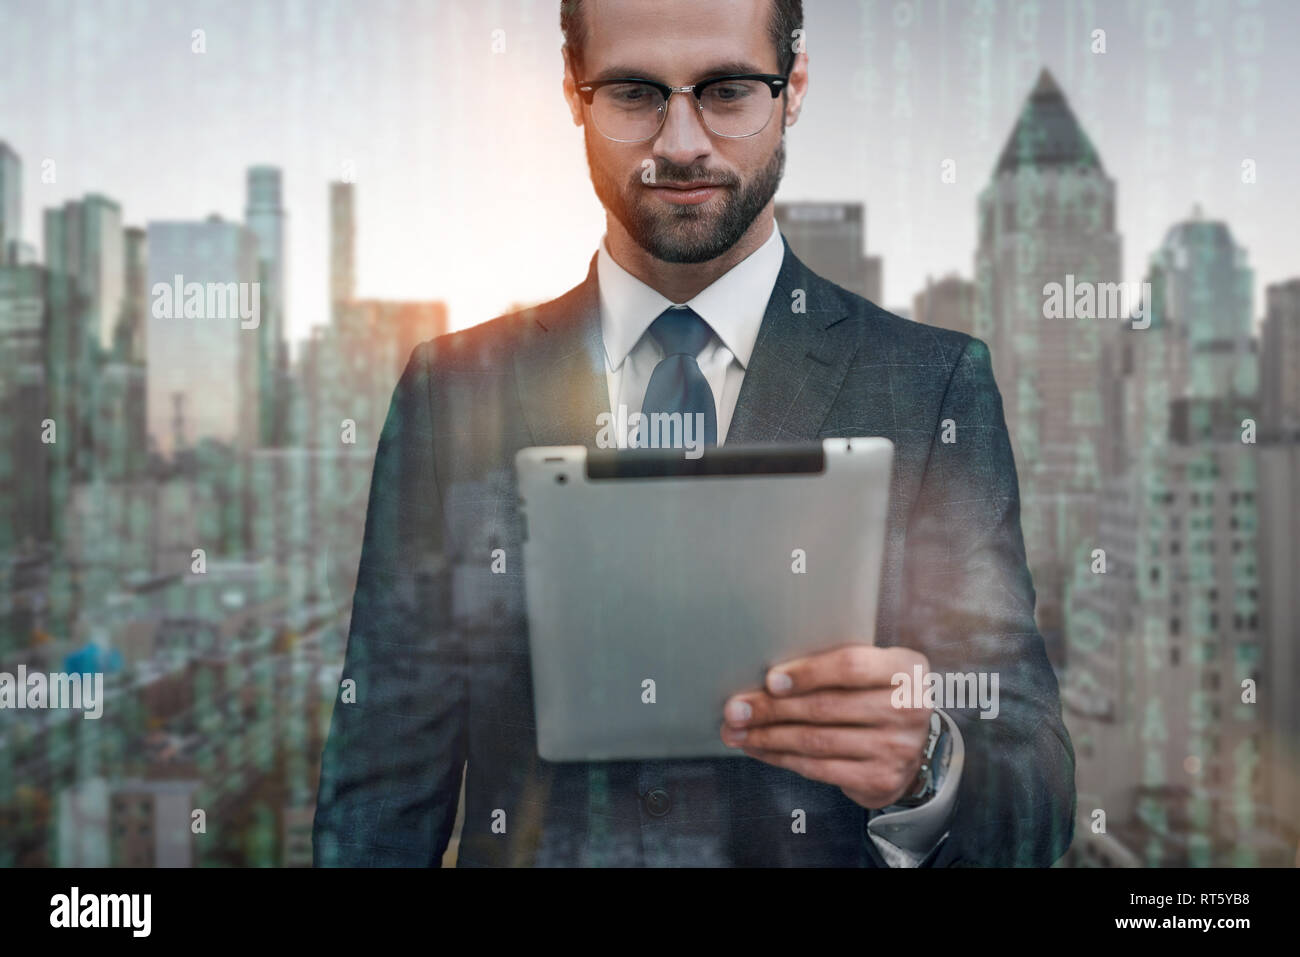 Always connected. Positive businessman working on digital tablet while standing outdoors with modern office buildings on the background. Digital. Technologies. Business look - Stock Image